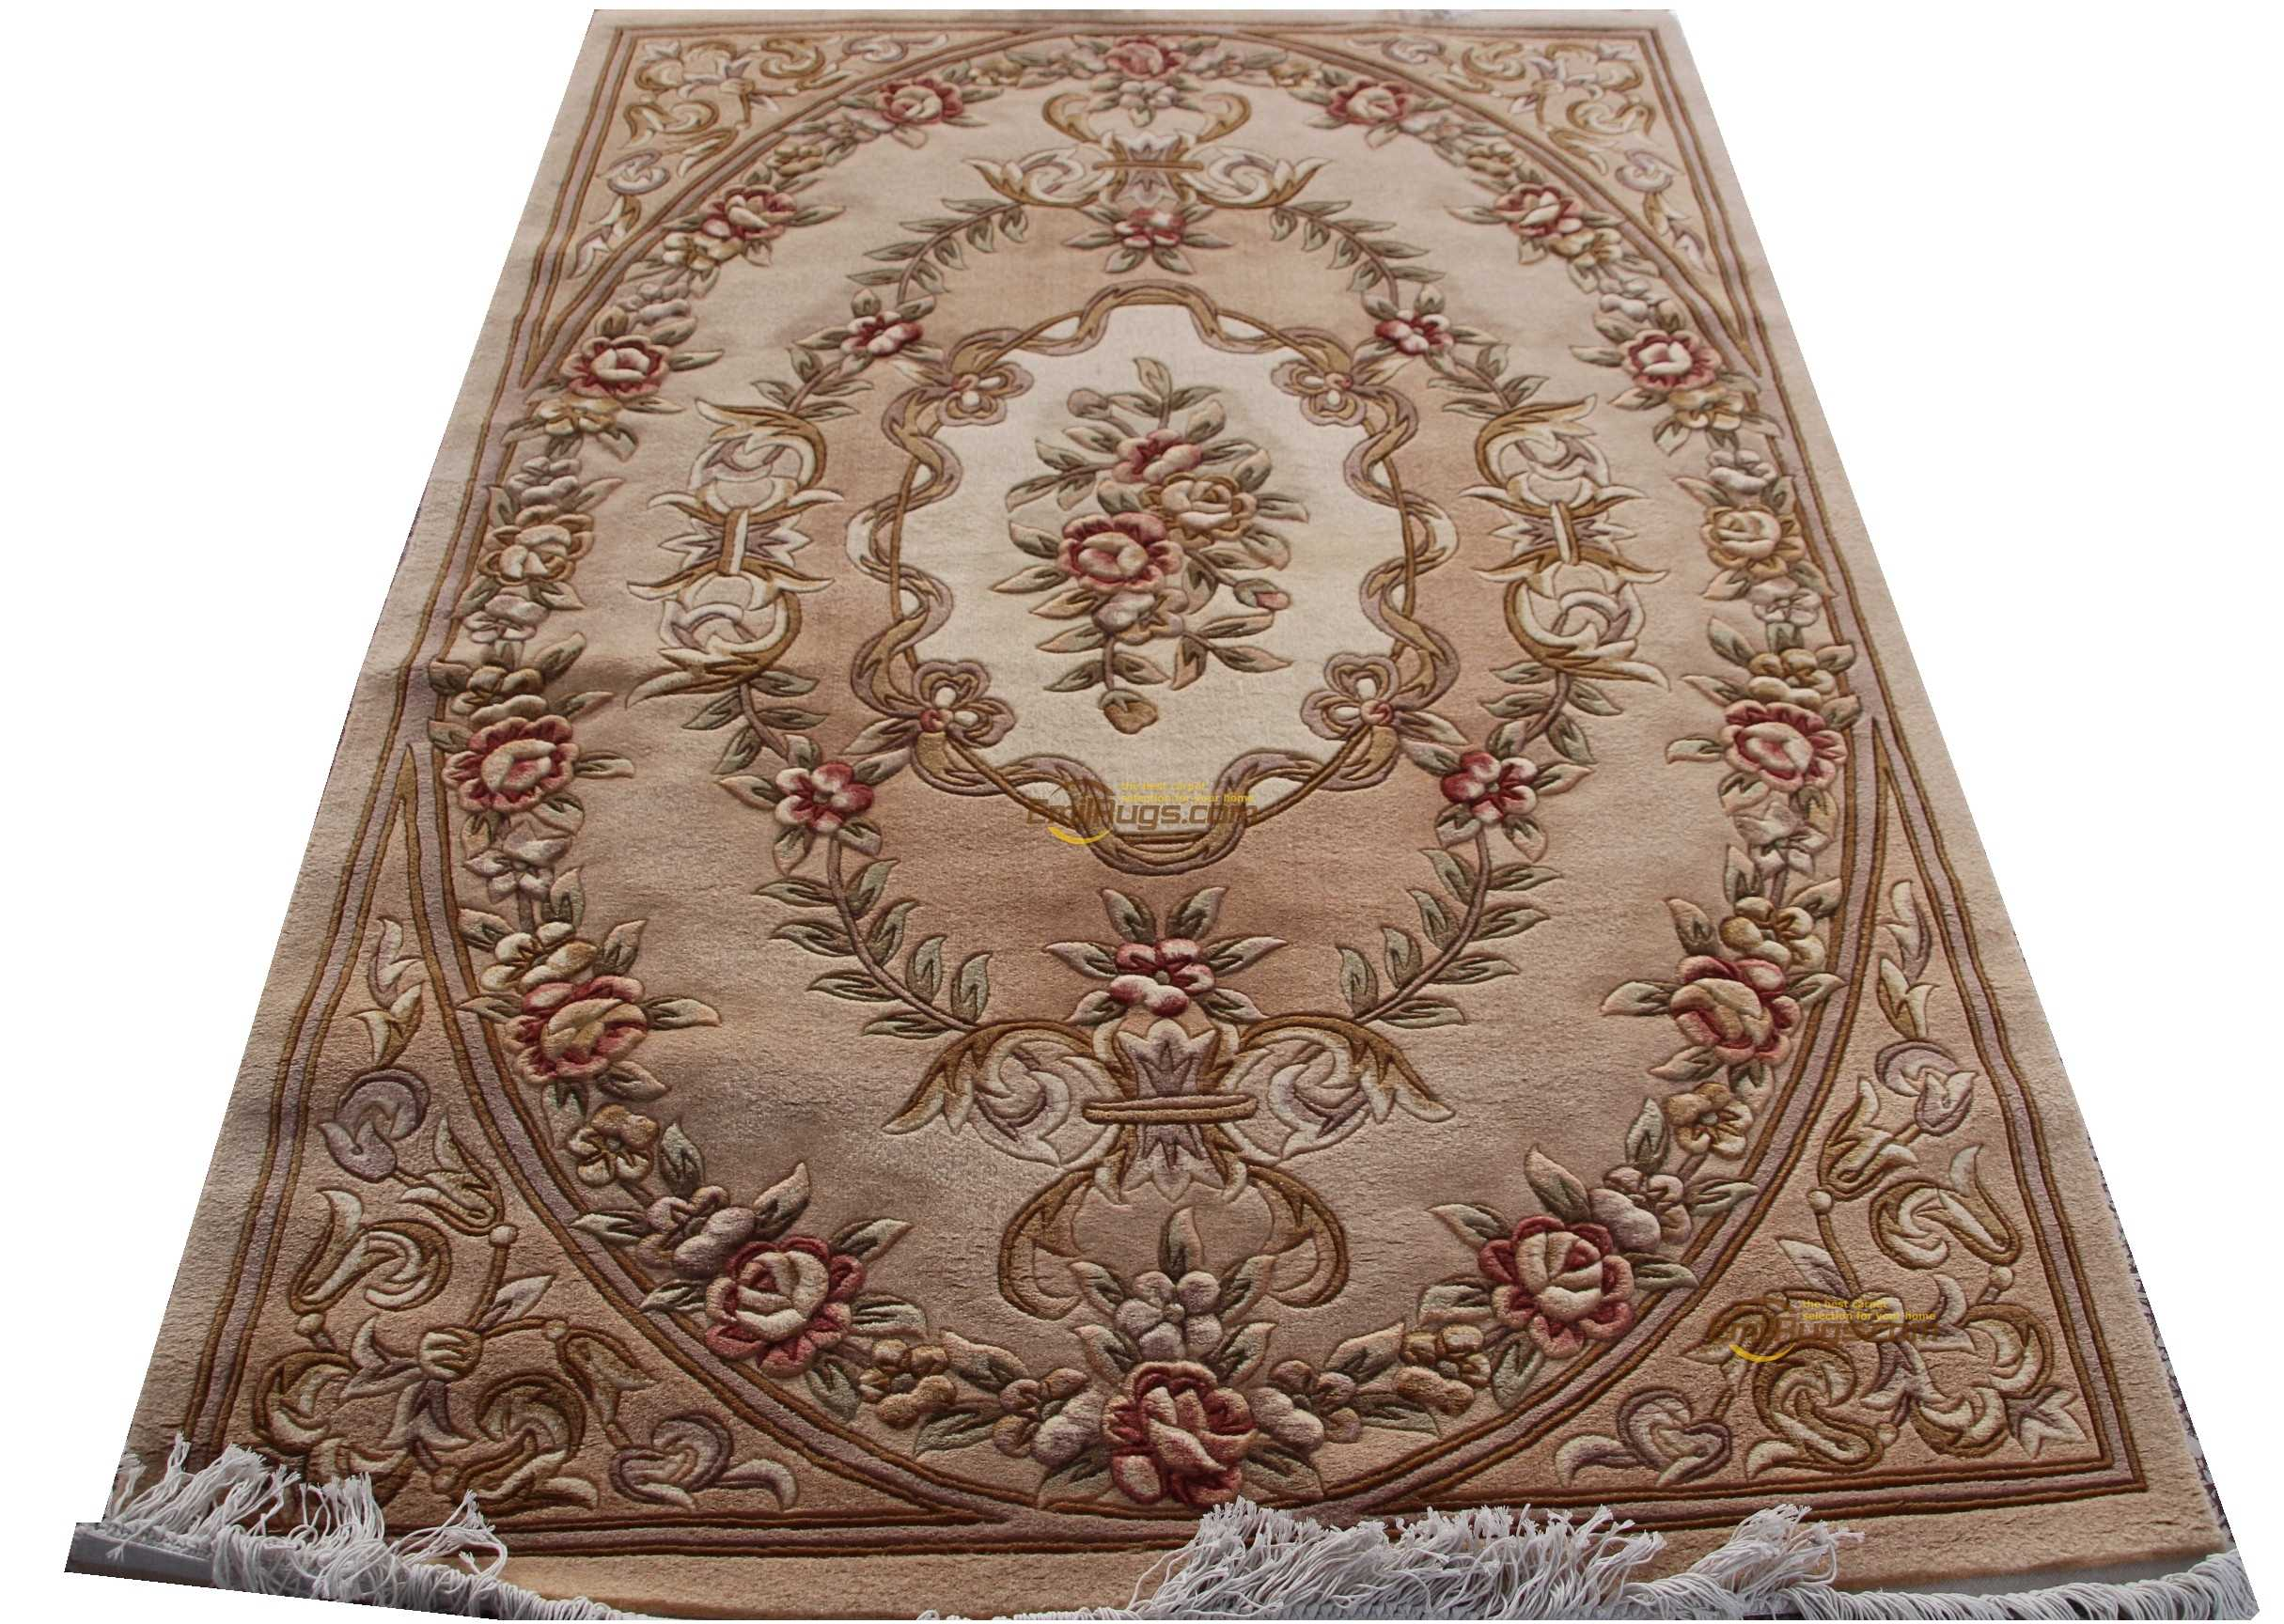 Woven Carpet Wool French Carpet About Machine Made Thick Plush Savonnerie Rug